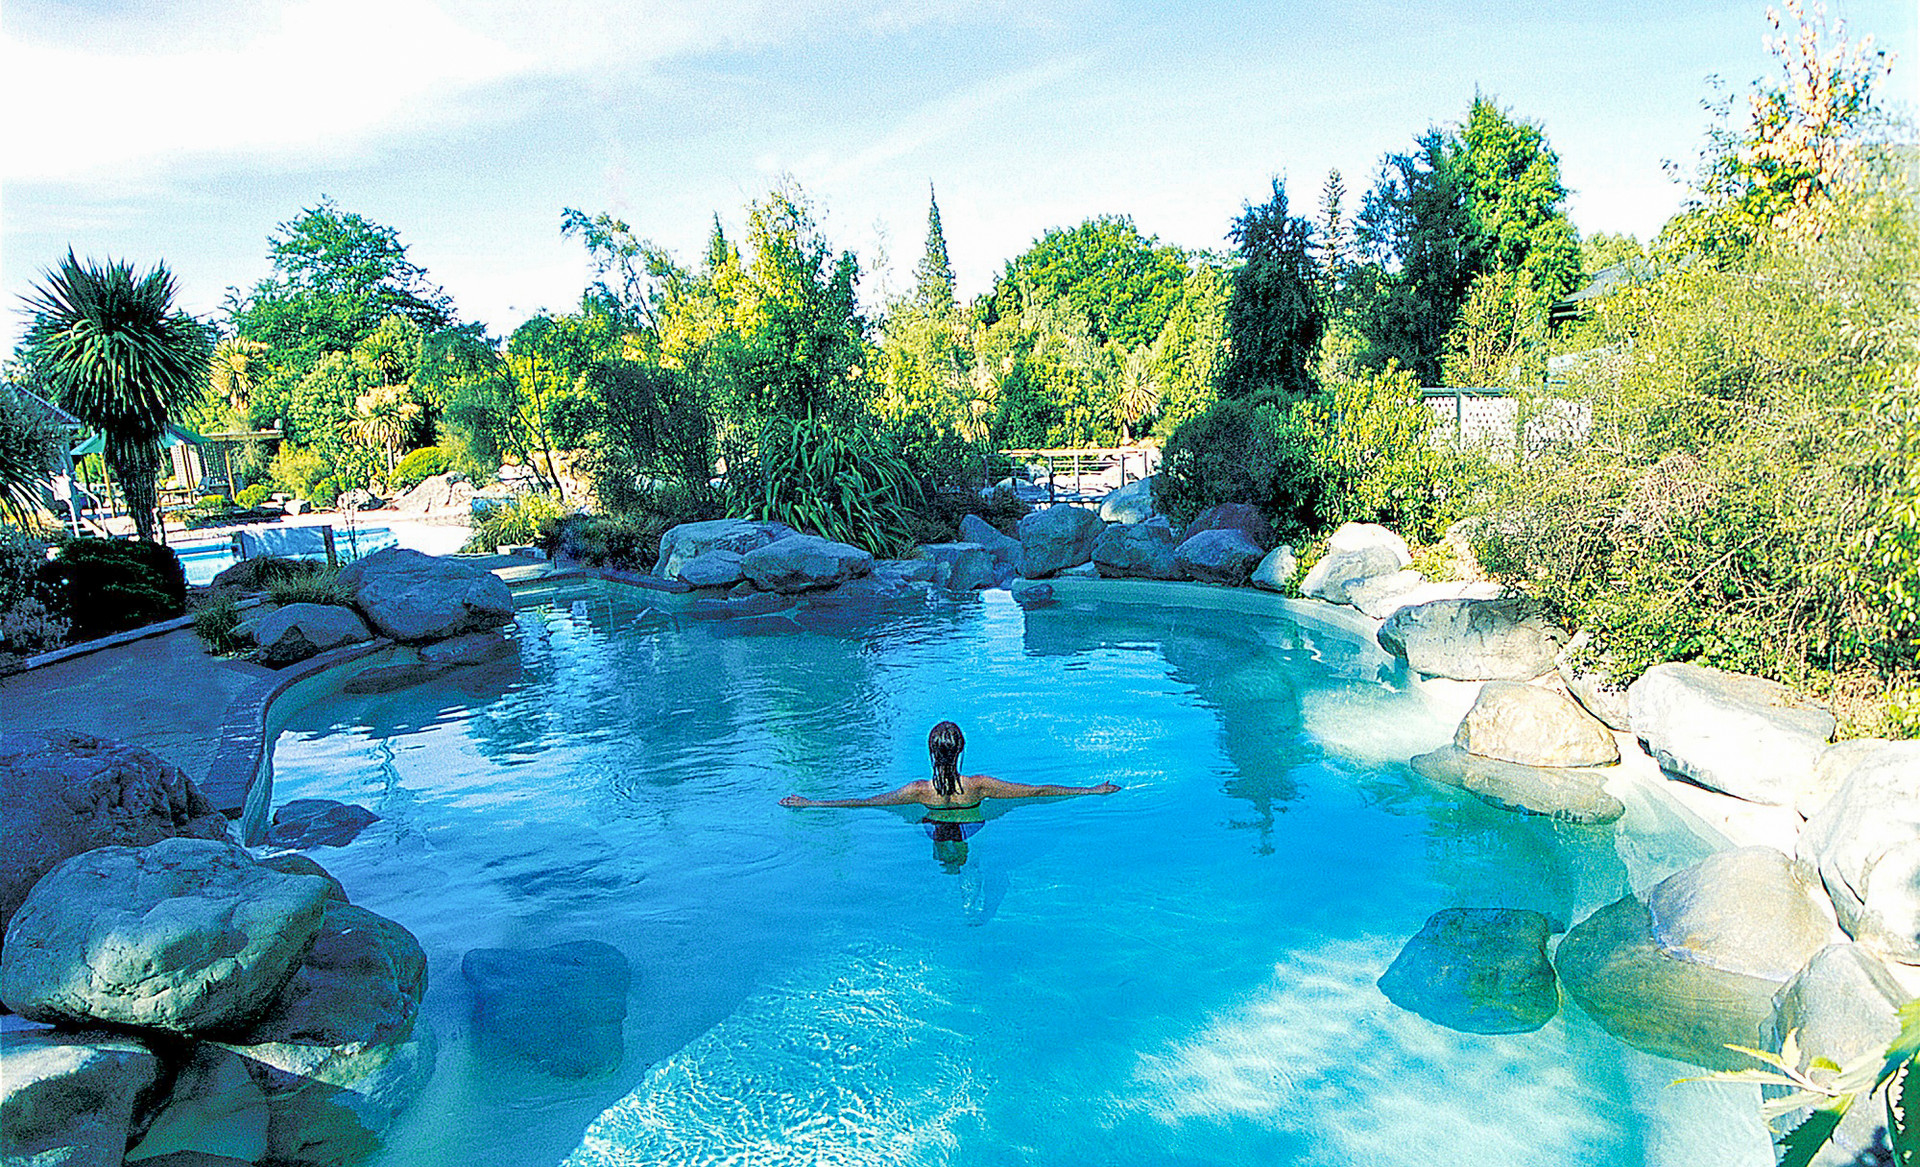 bather relaxing in natural hot pool landscape design at hanmer springs